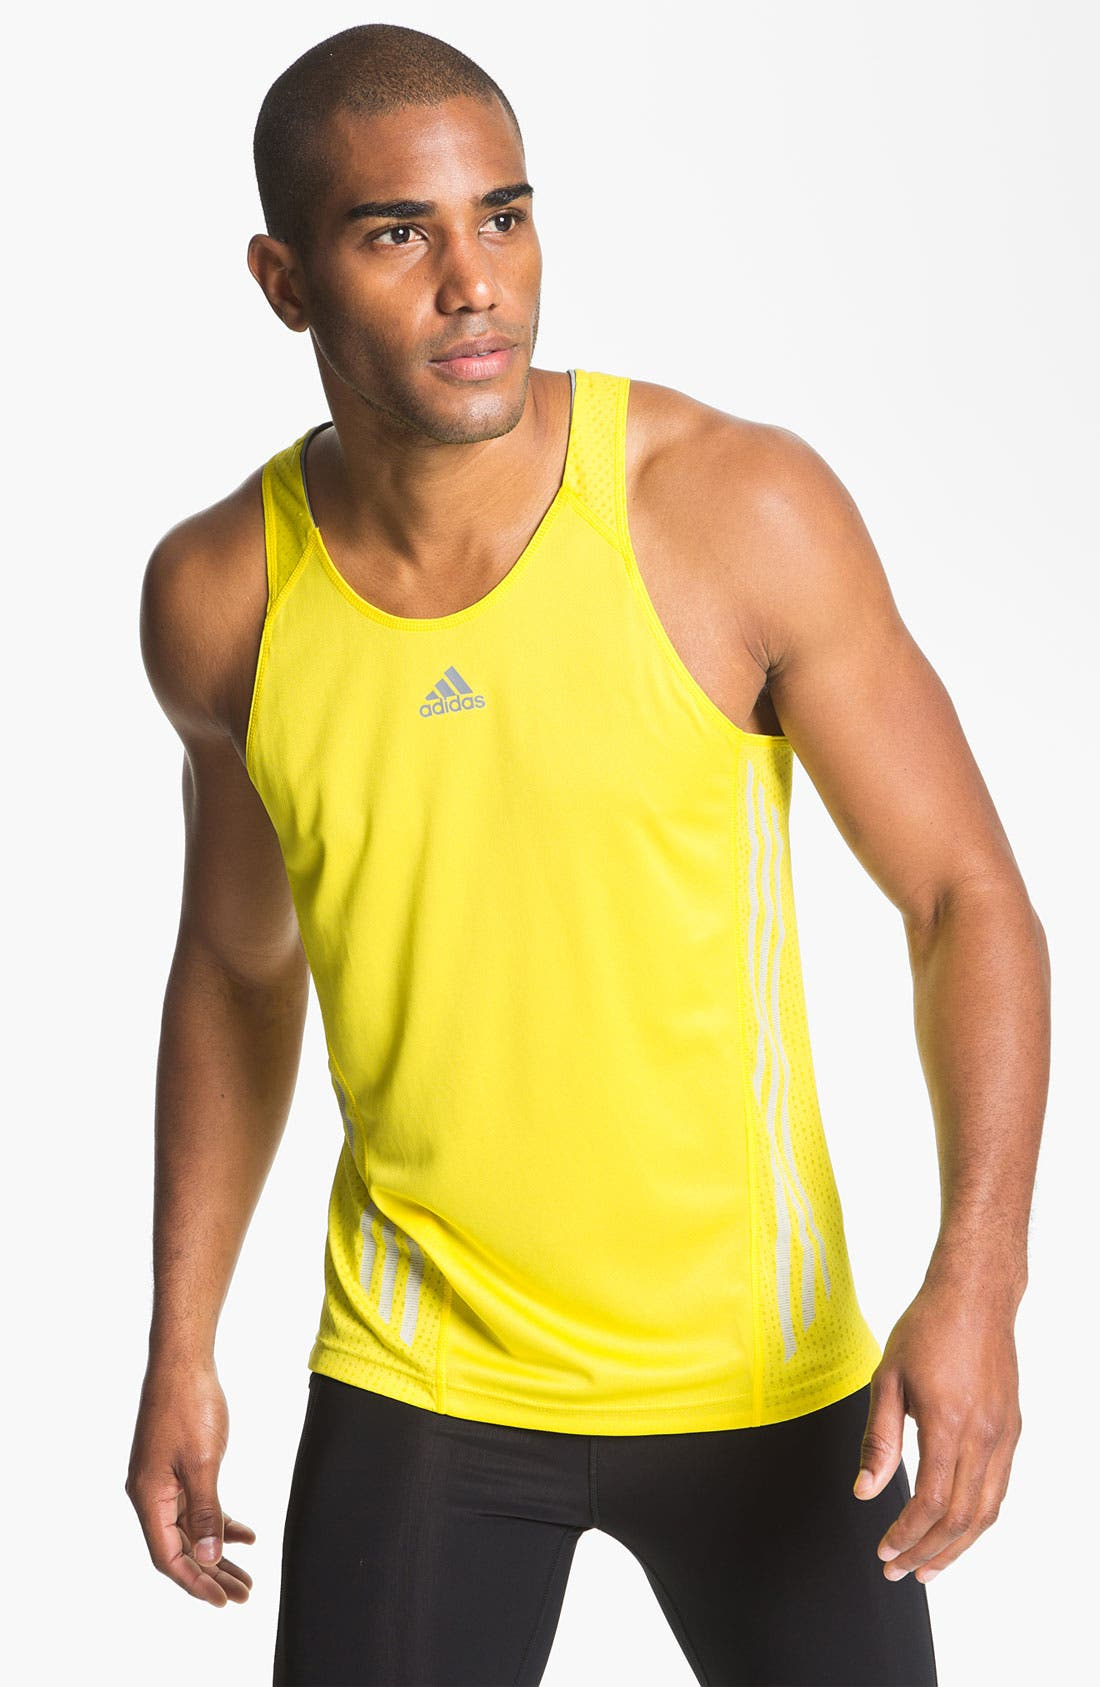 Alternate Image 1 Selected - adidas 'Supernova' Tank Top